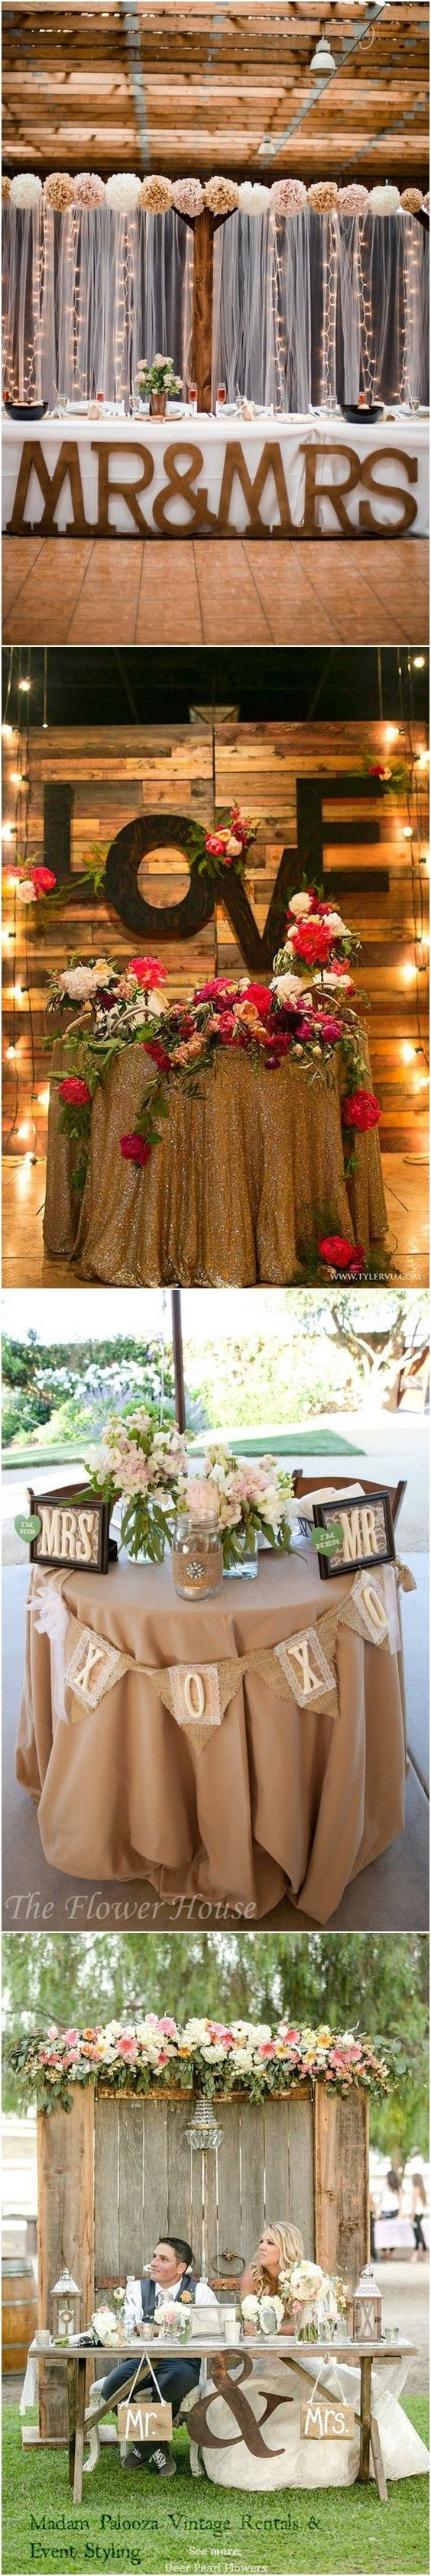 Rustic Country Wedding Ideas Sweetheart Table Decor For Reception Http